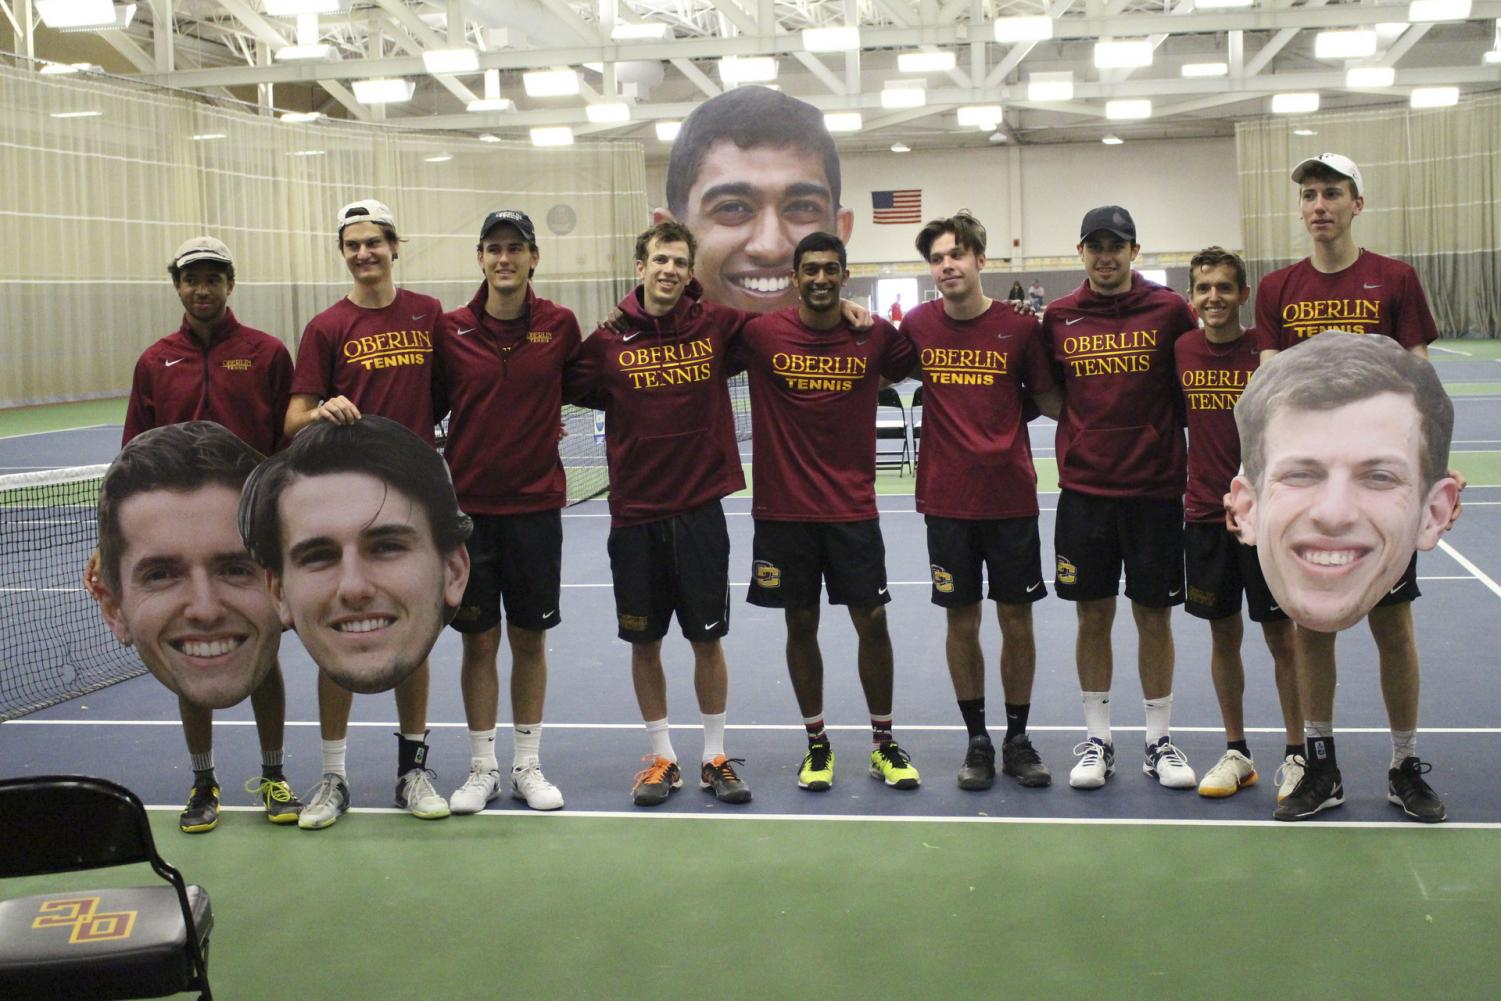 The men's tennis team, led by four seniors, will look to get revenge against the sixth-seeded DePauw University — who knocked them out of the NCAC Tournament last year — today at 9 a.m. in Indianapolis.